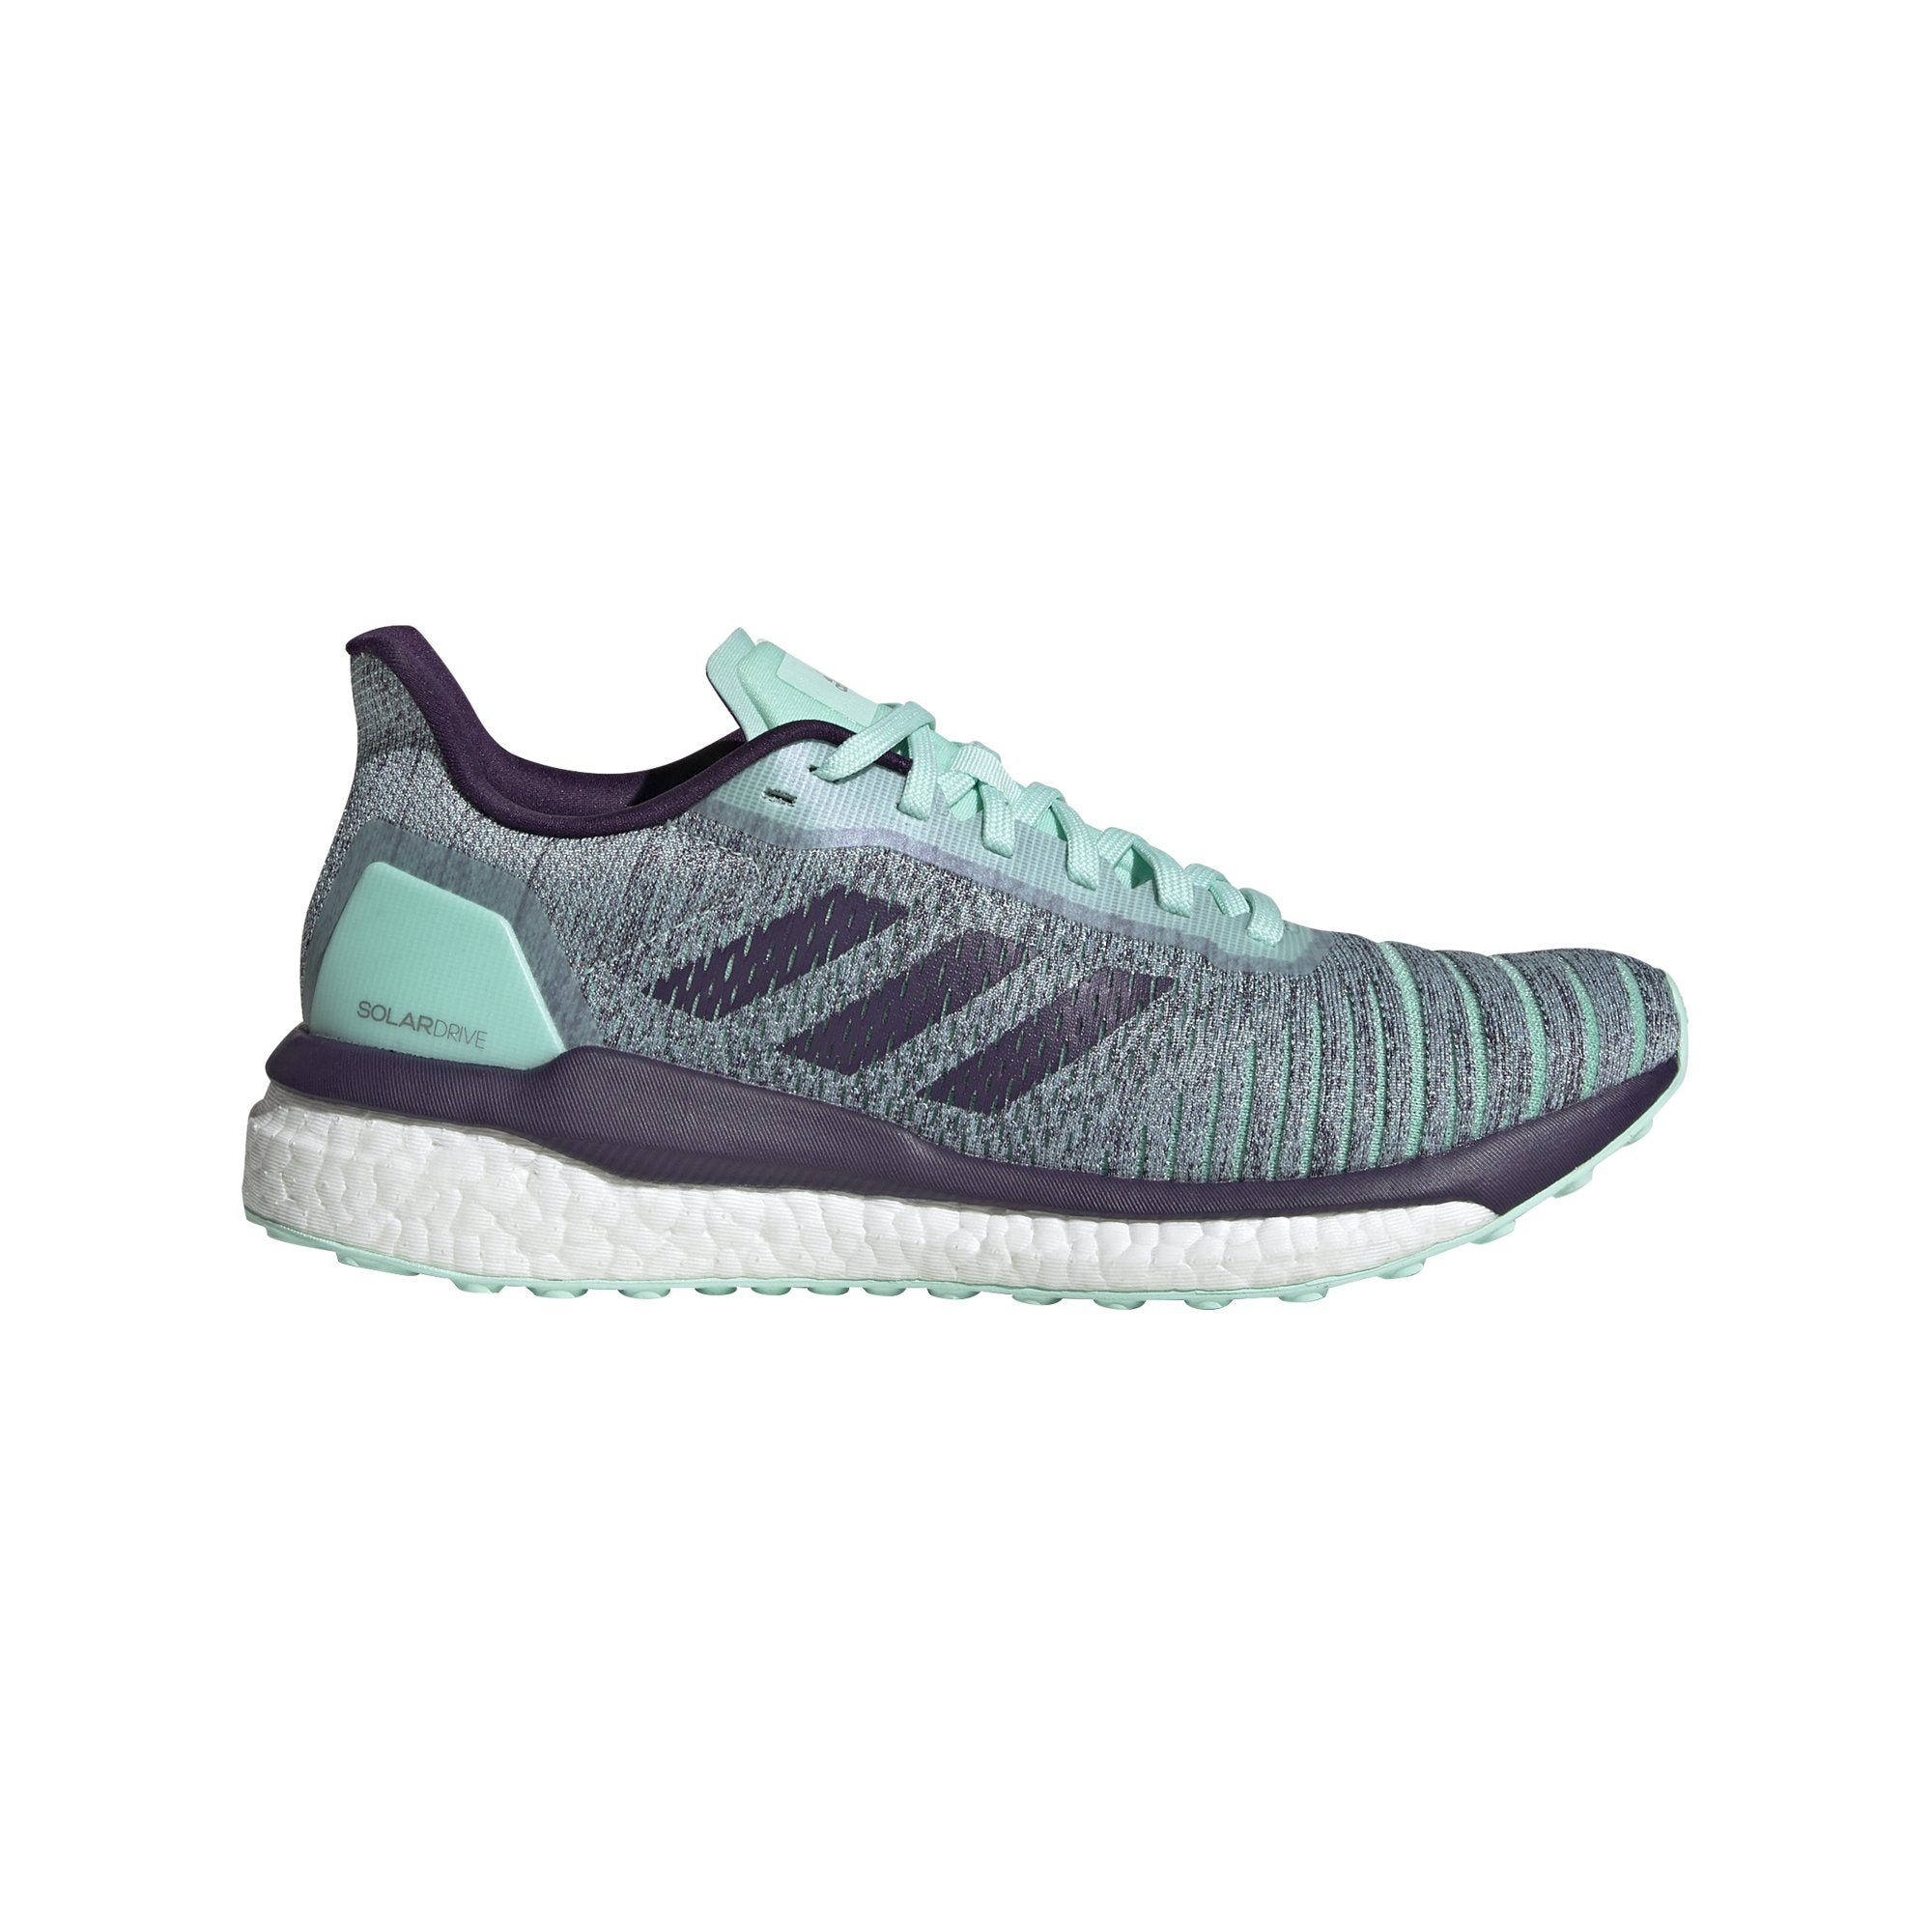 Adidas Womens Solardrive Shoes - clear mint/legend purple/active purple SP-FOOTWEAR-WOMENS Adidas